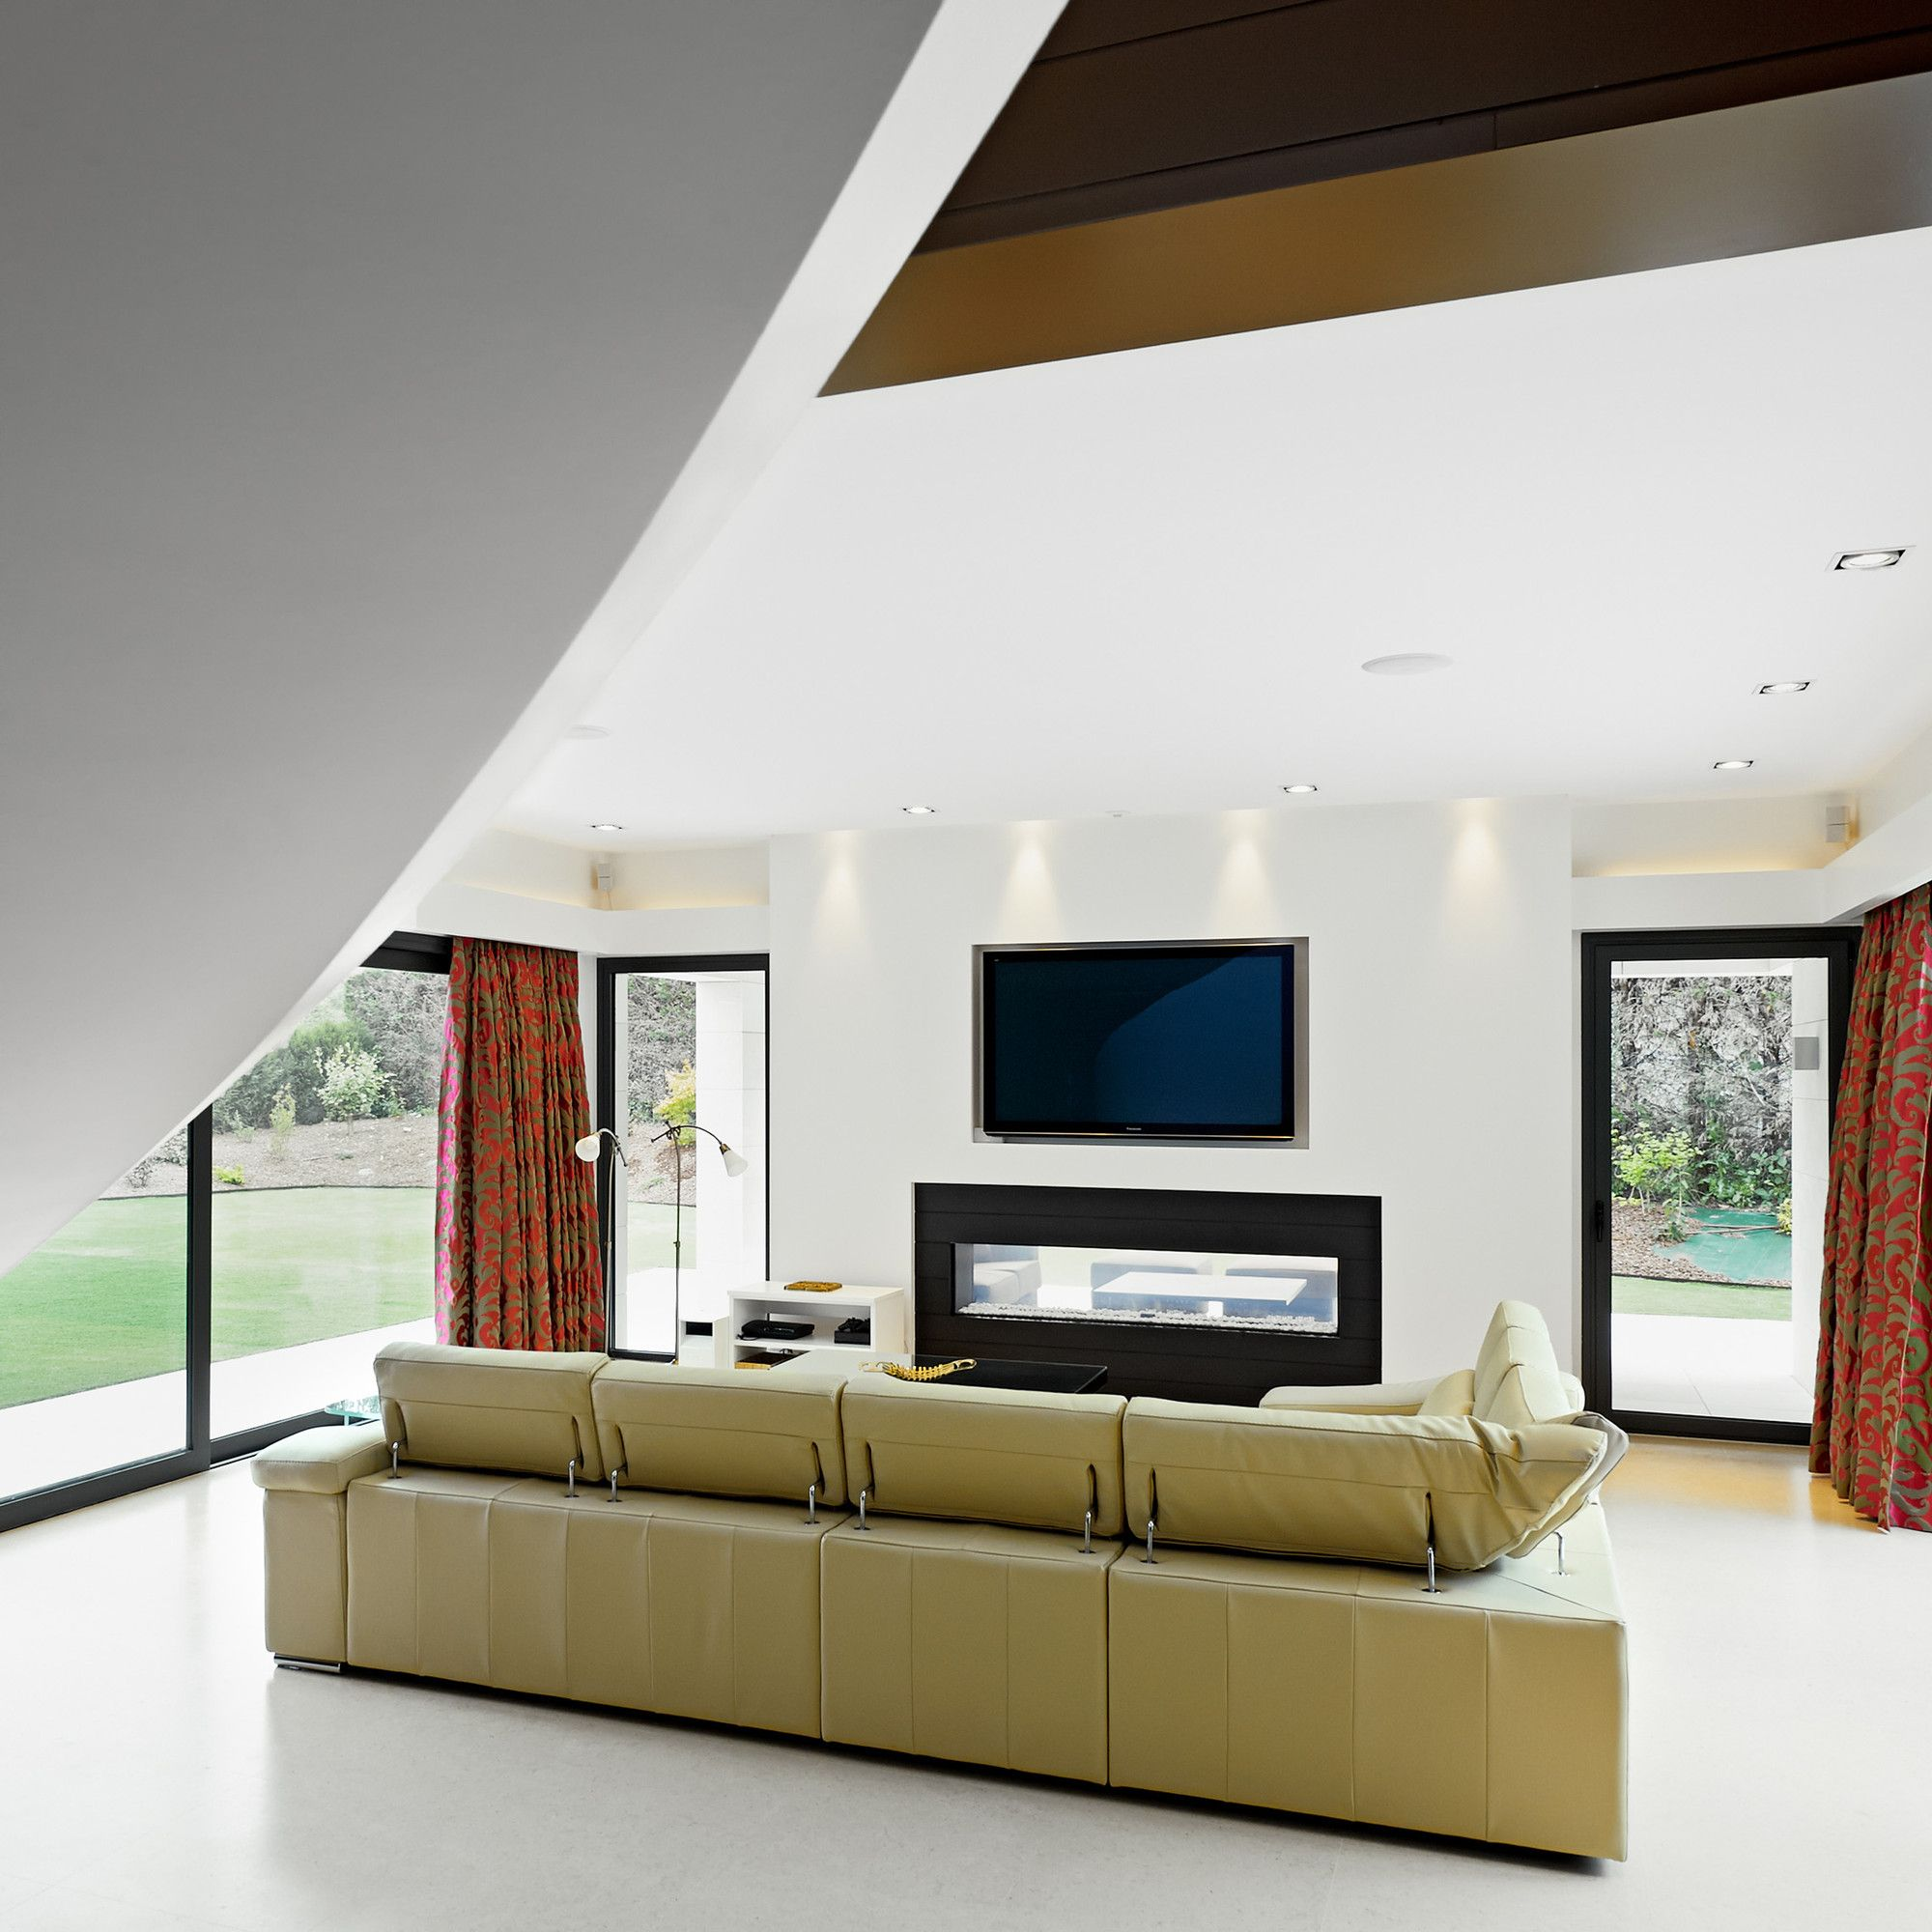 mounting dresser installation ceiling fairfield mount mounted ceilings home tv ct options ideas inside theater bedroom with height plan